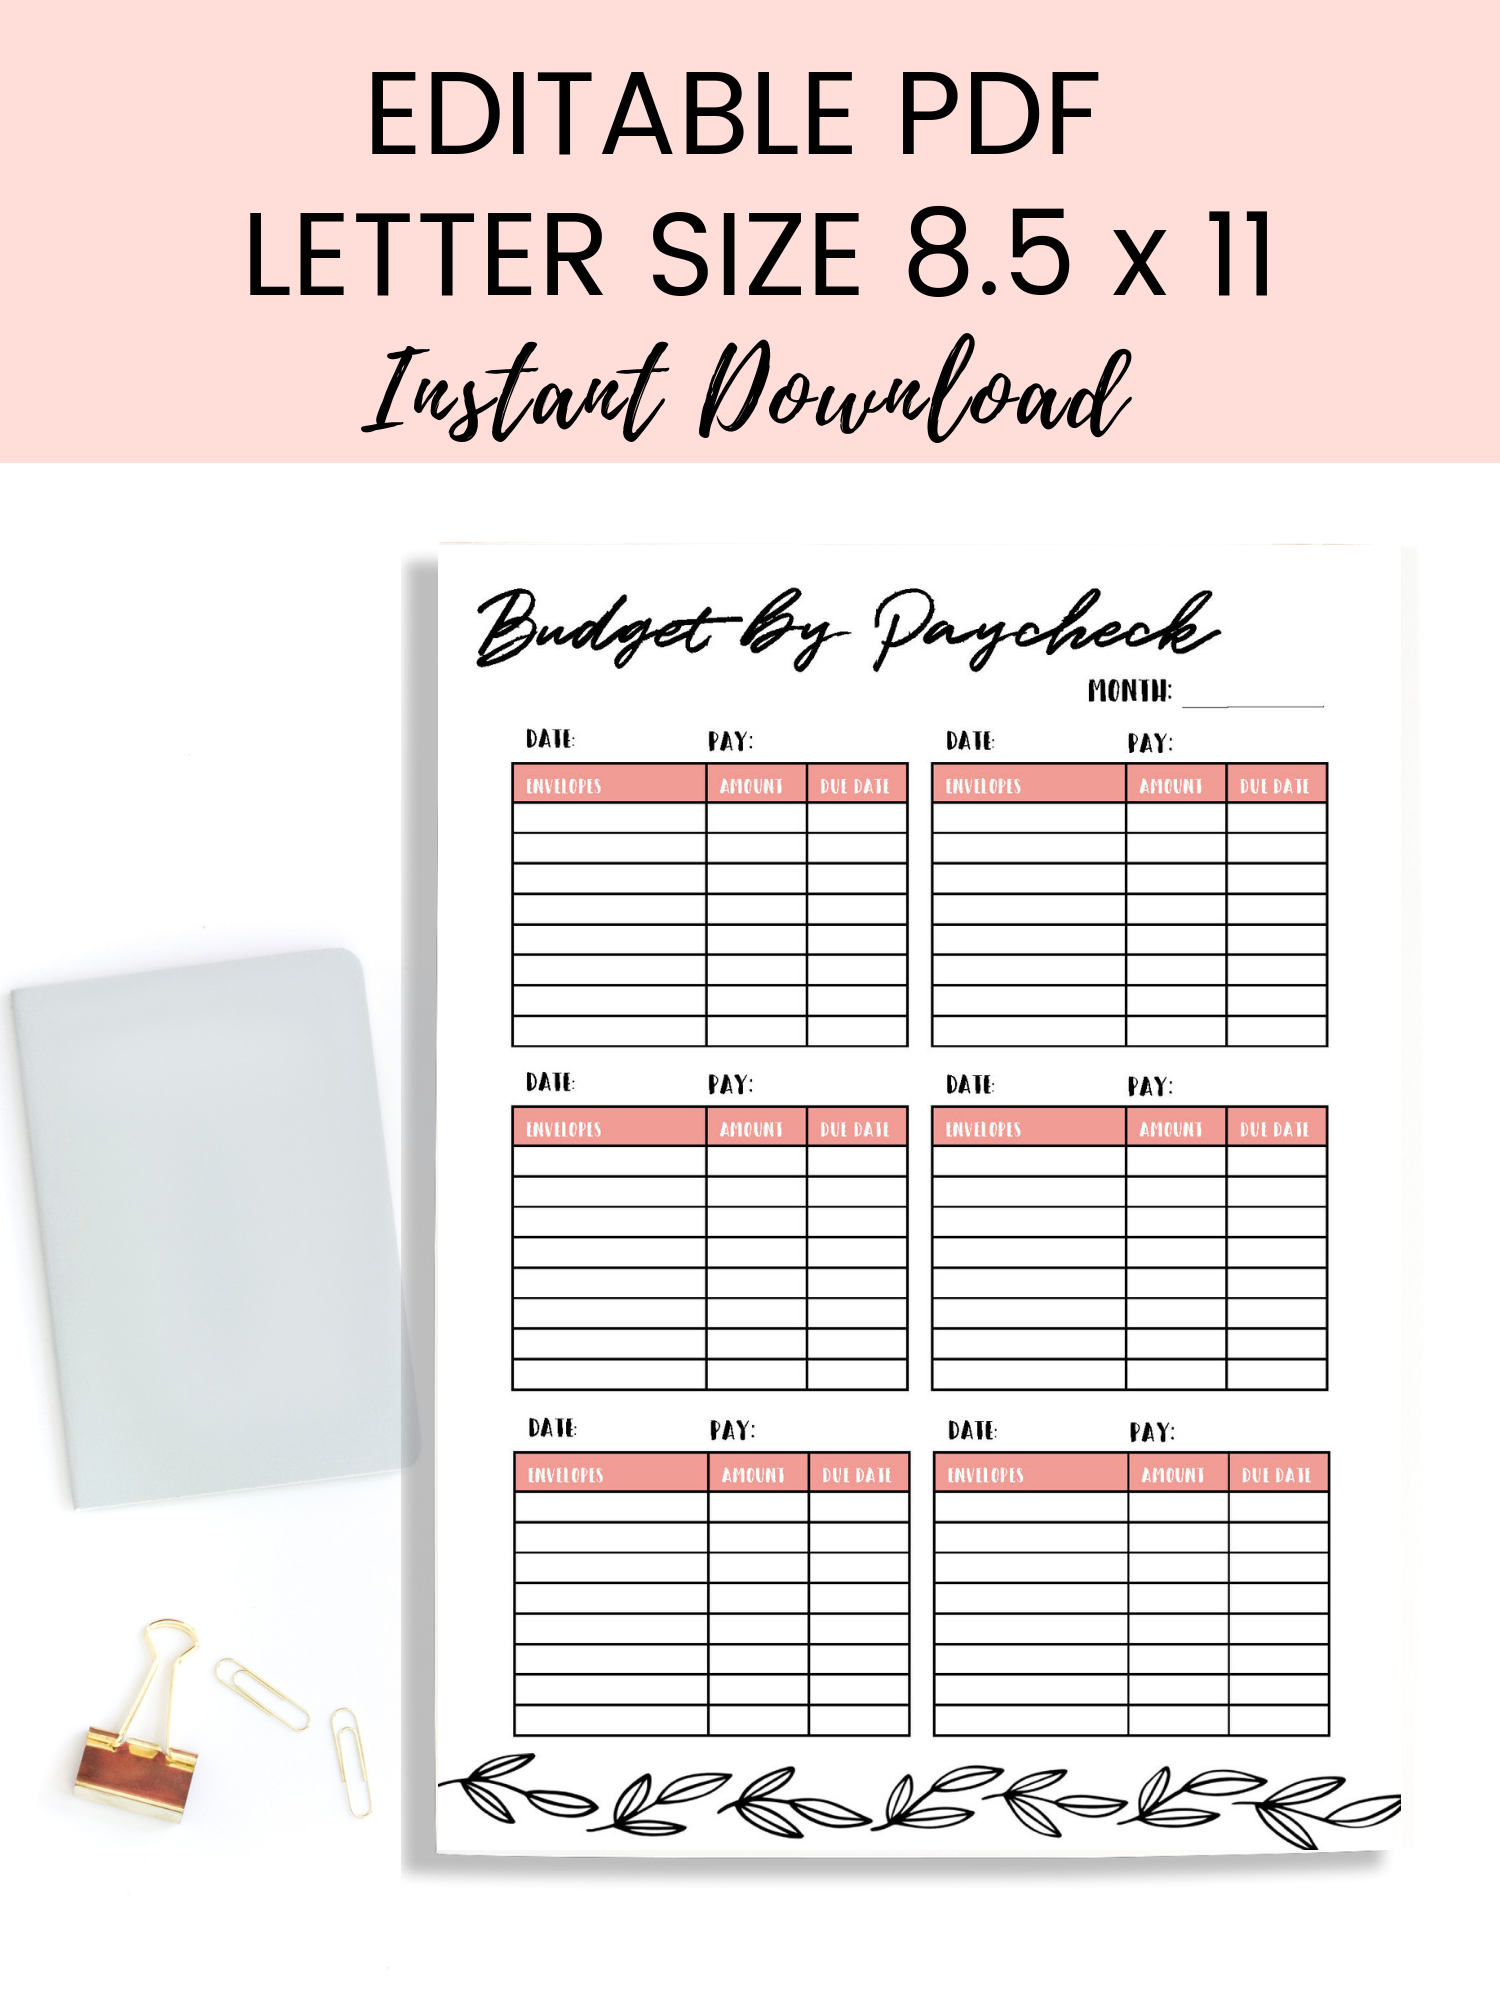 Budget By Paycheck Editable Printable Budget